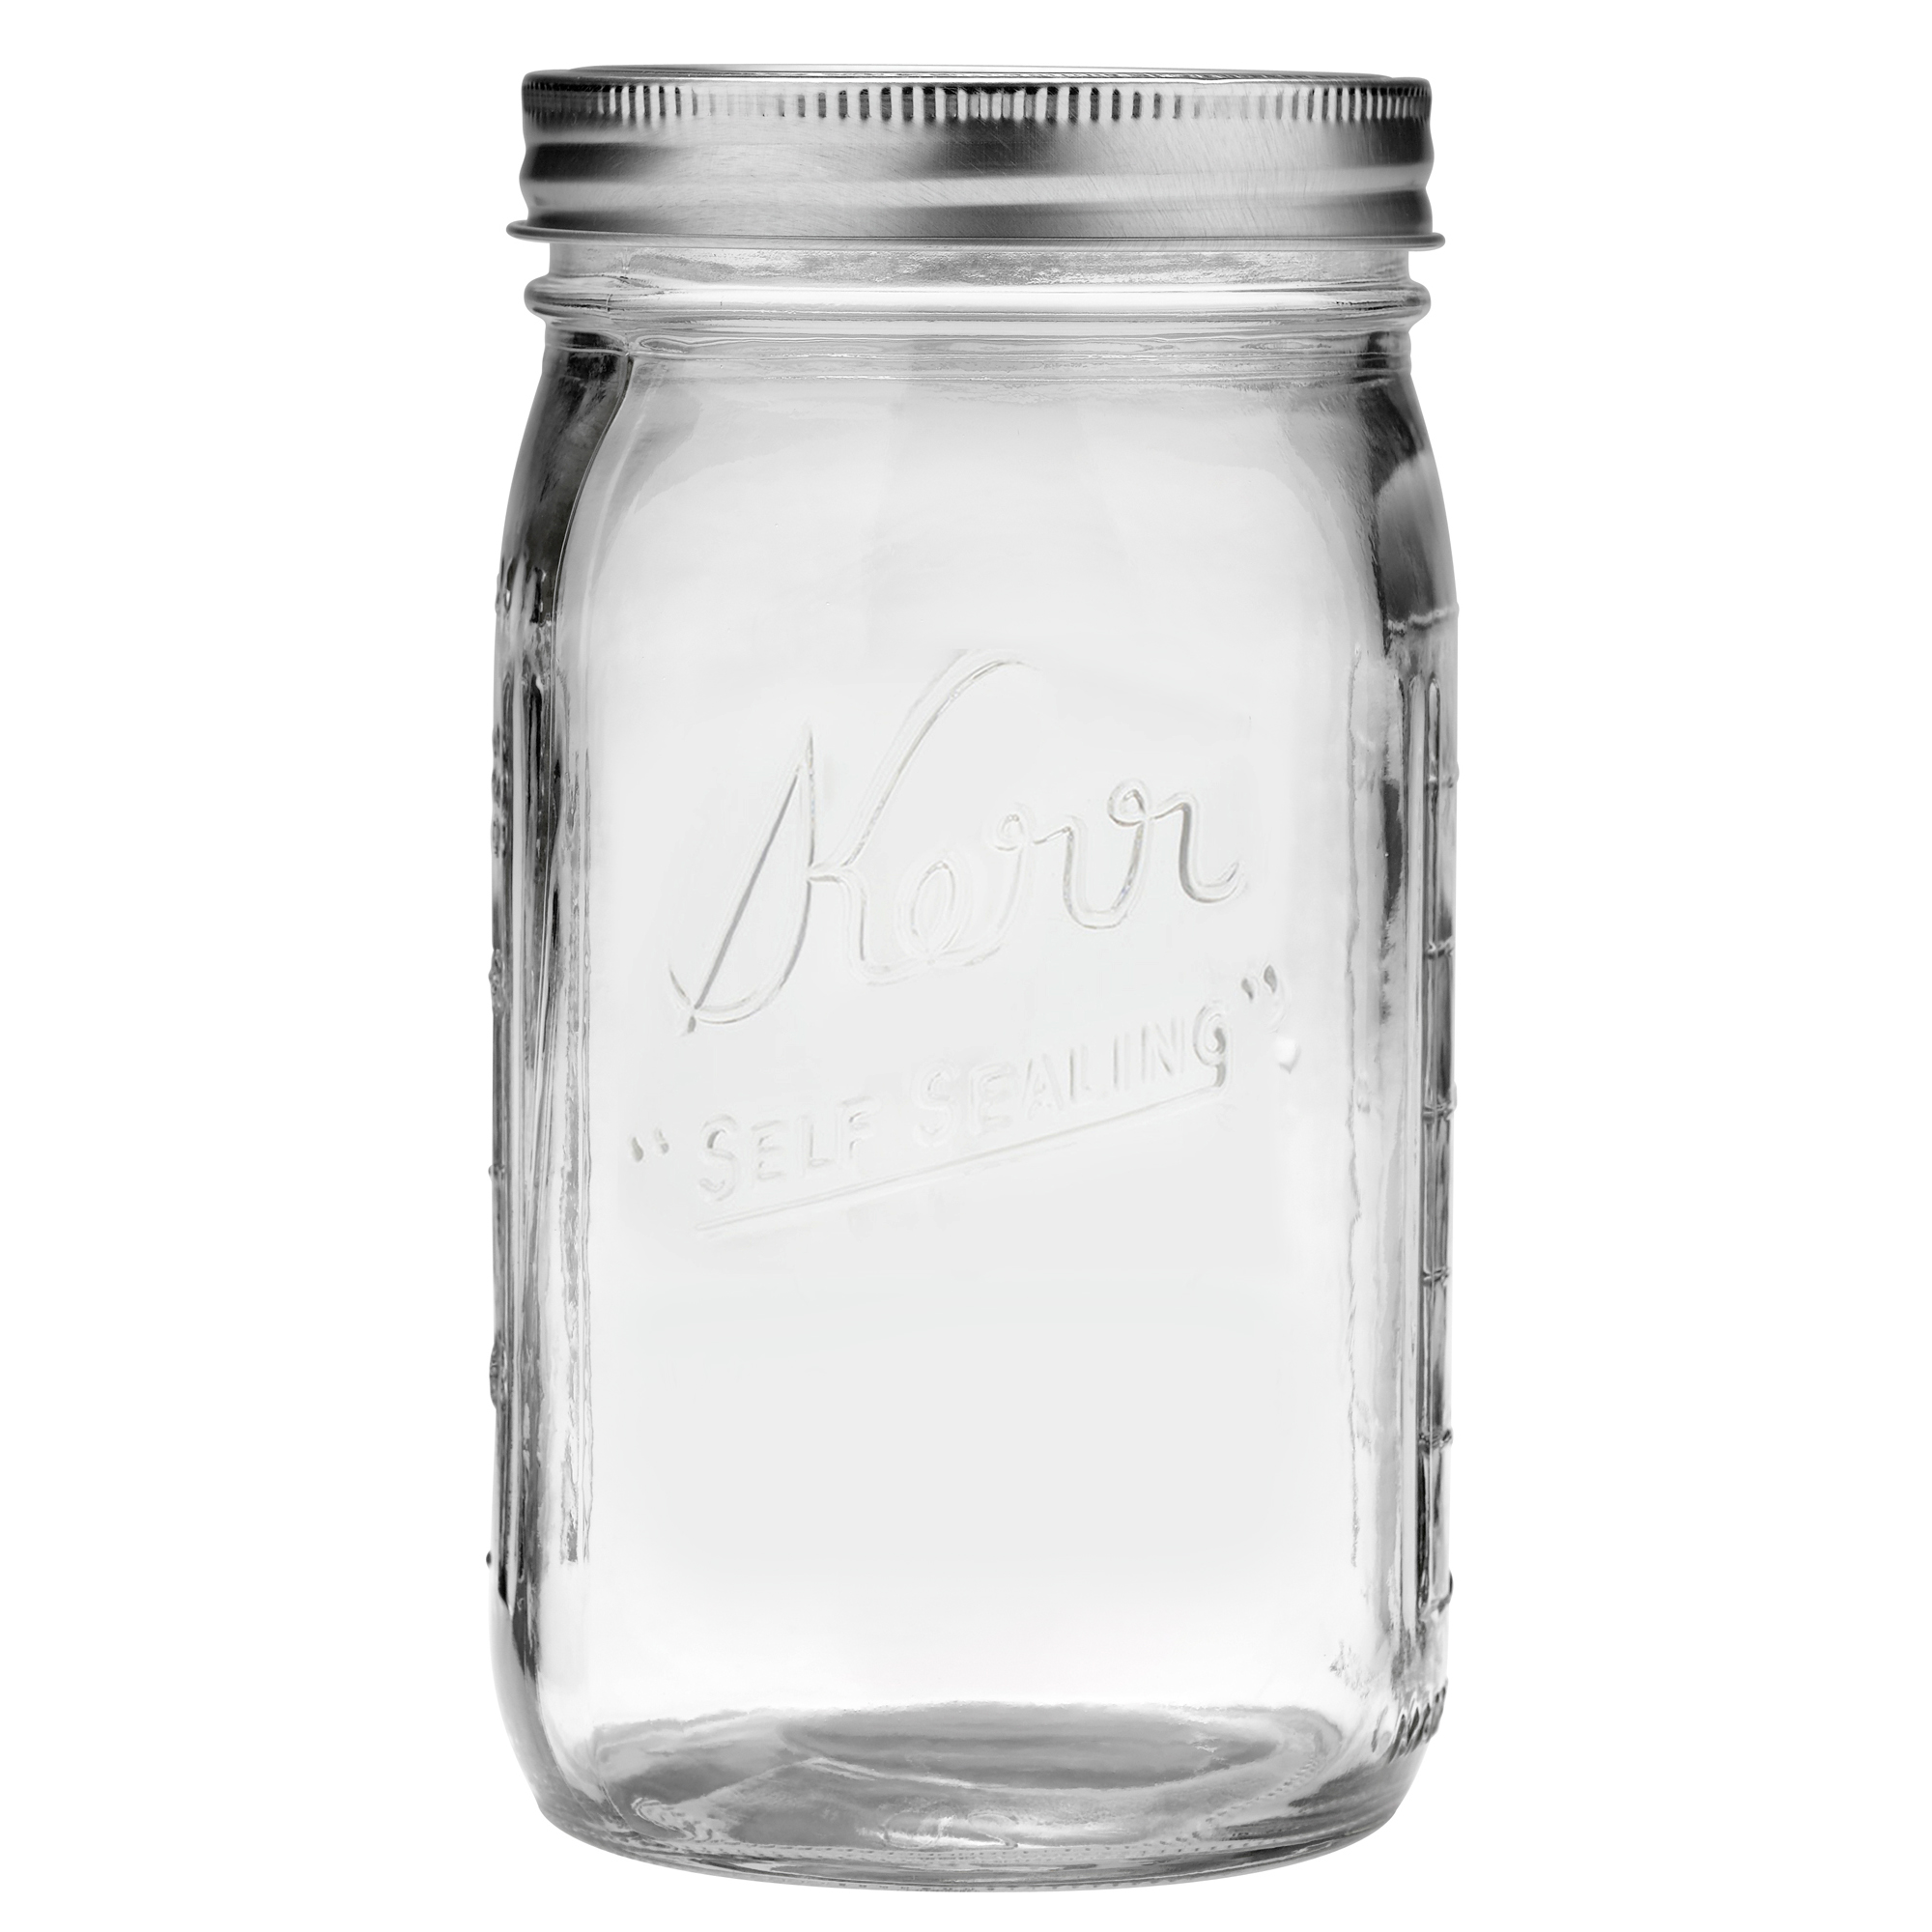 Kerr Glass Mason Jar with Lid and Band, Wide Mouth, 32 Ounces, 12 Count